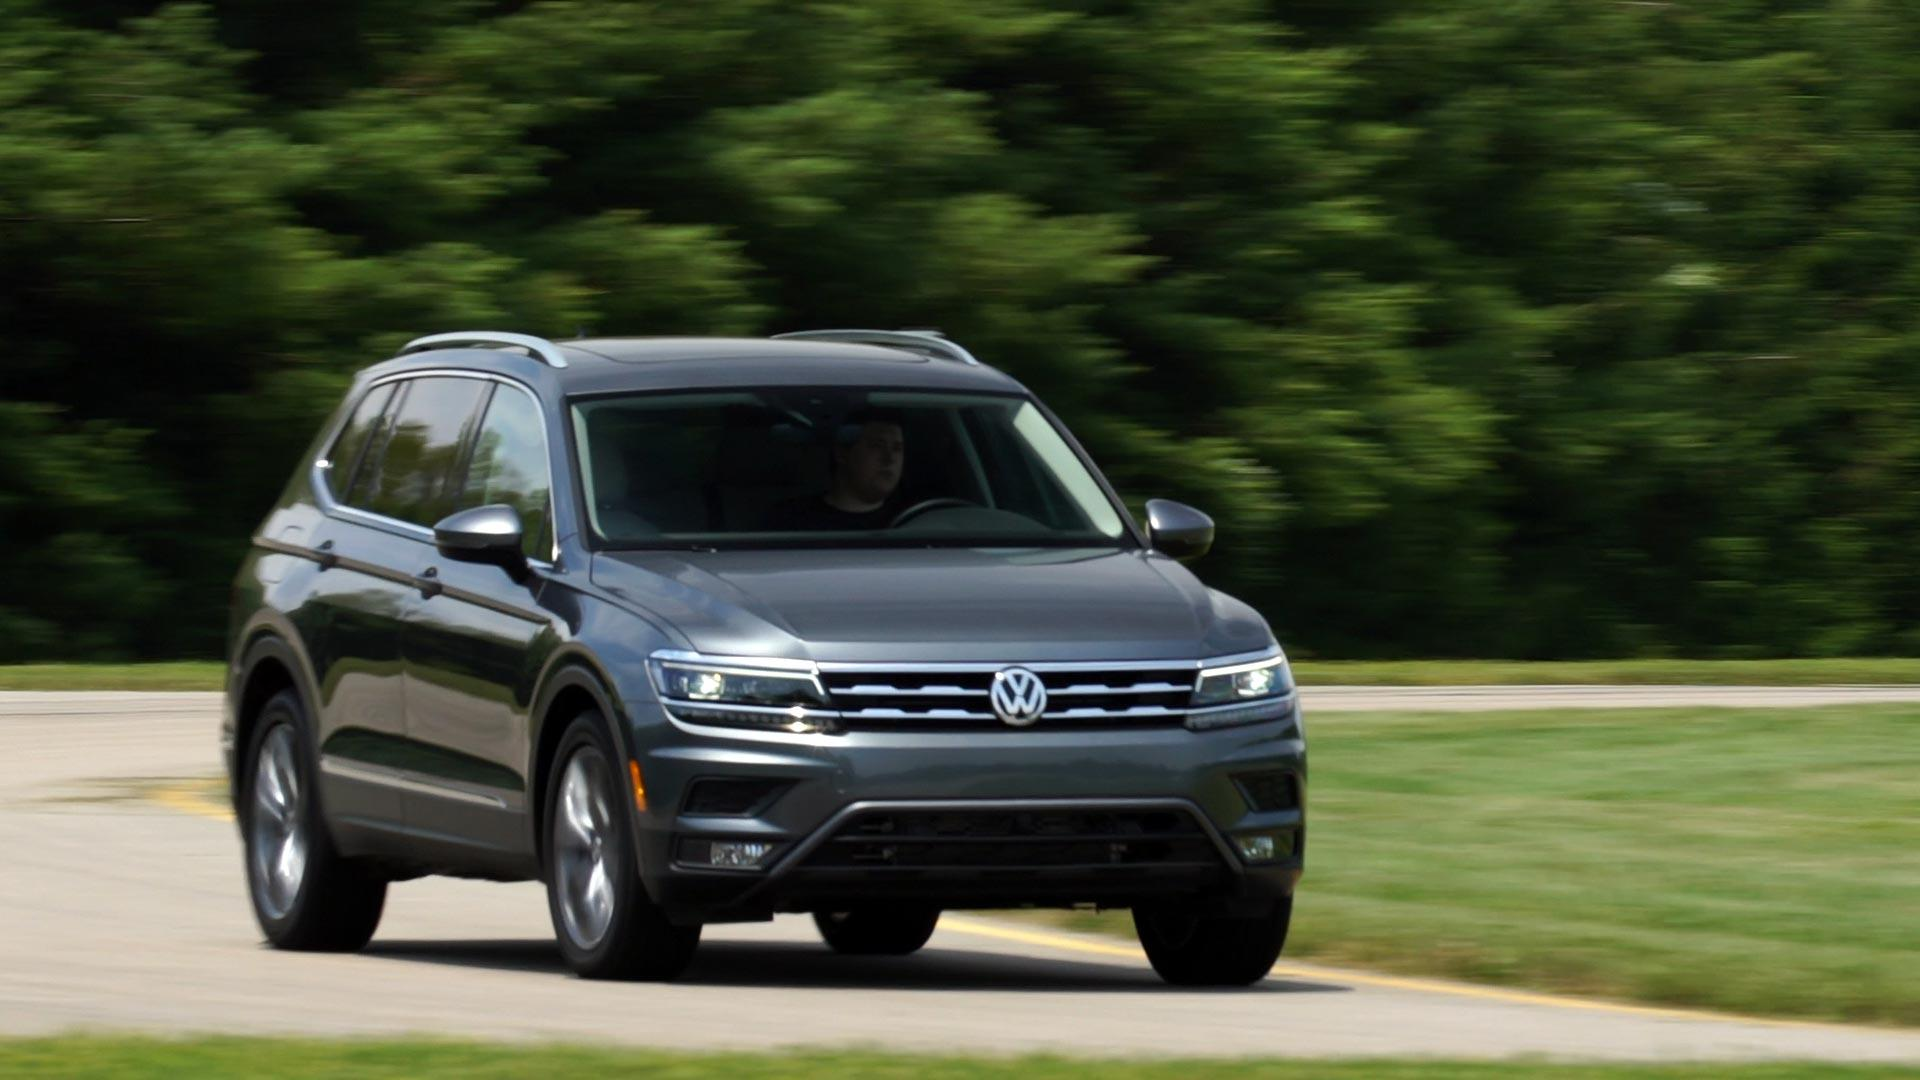 2018 Volkswagen Tiguan Review - Consumer Reports